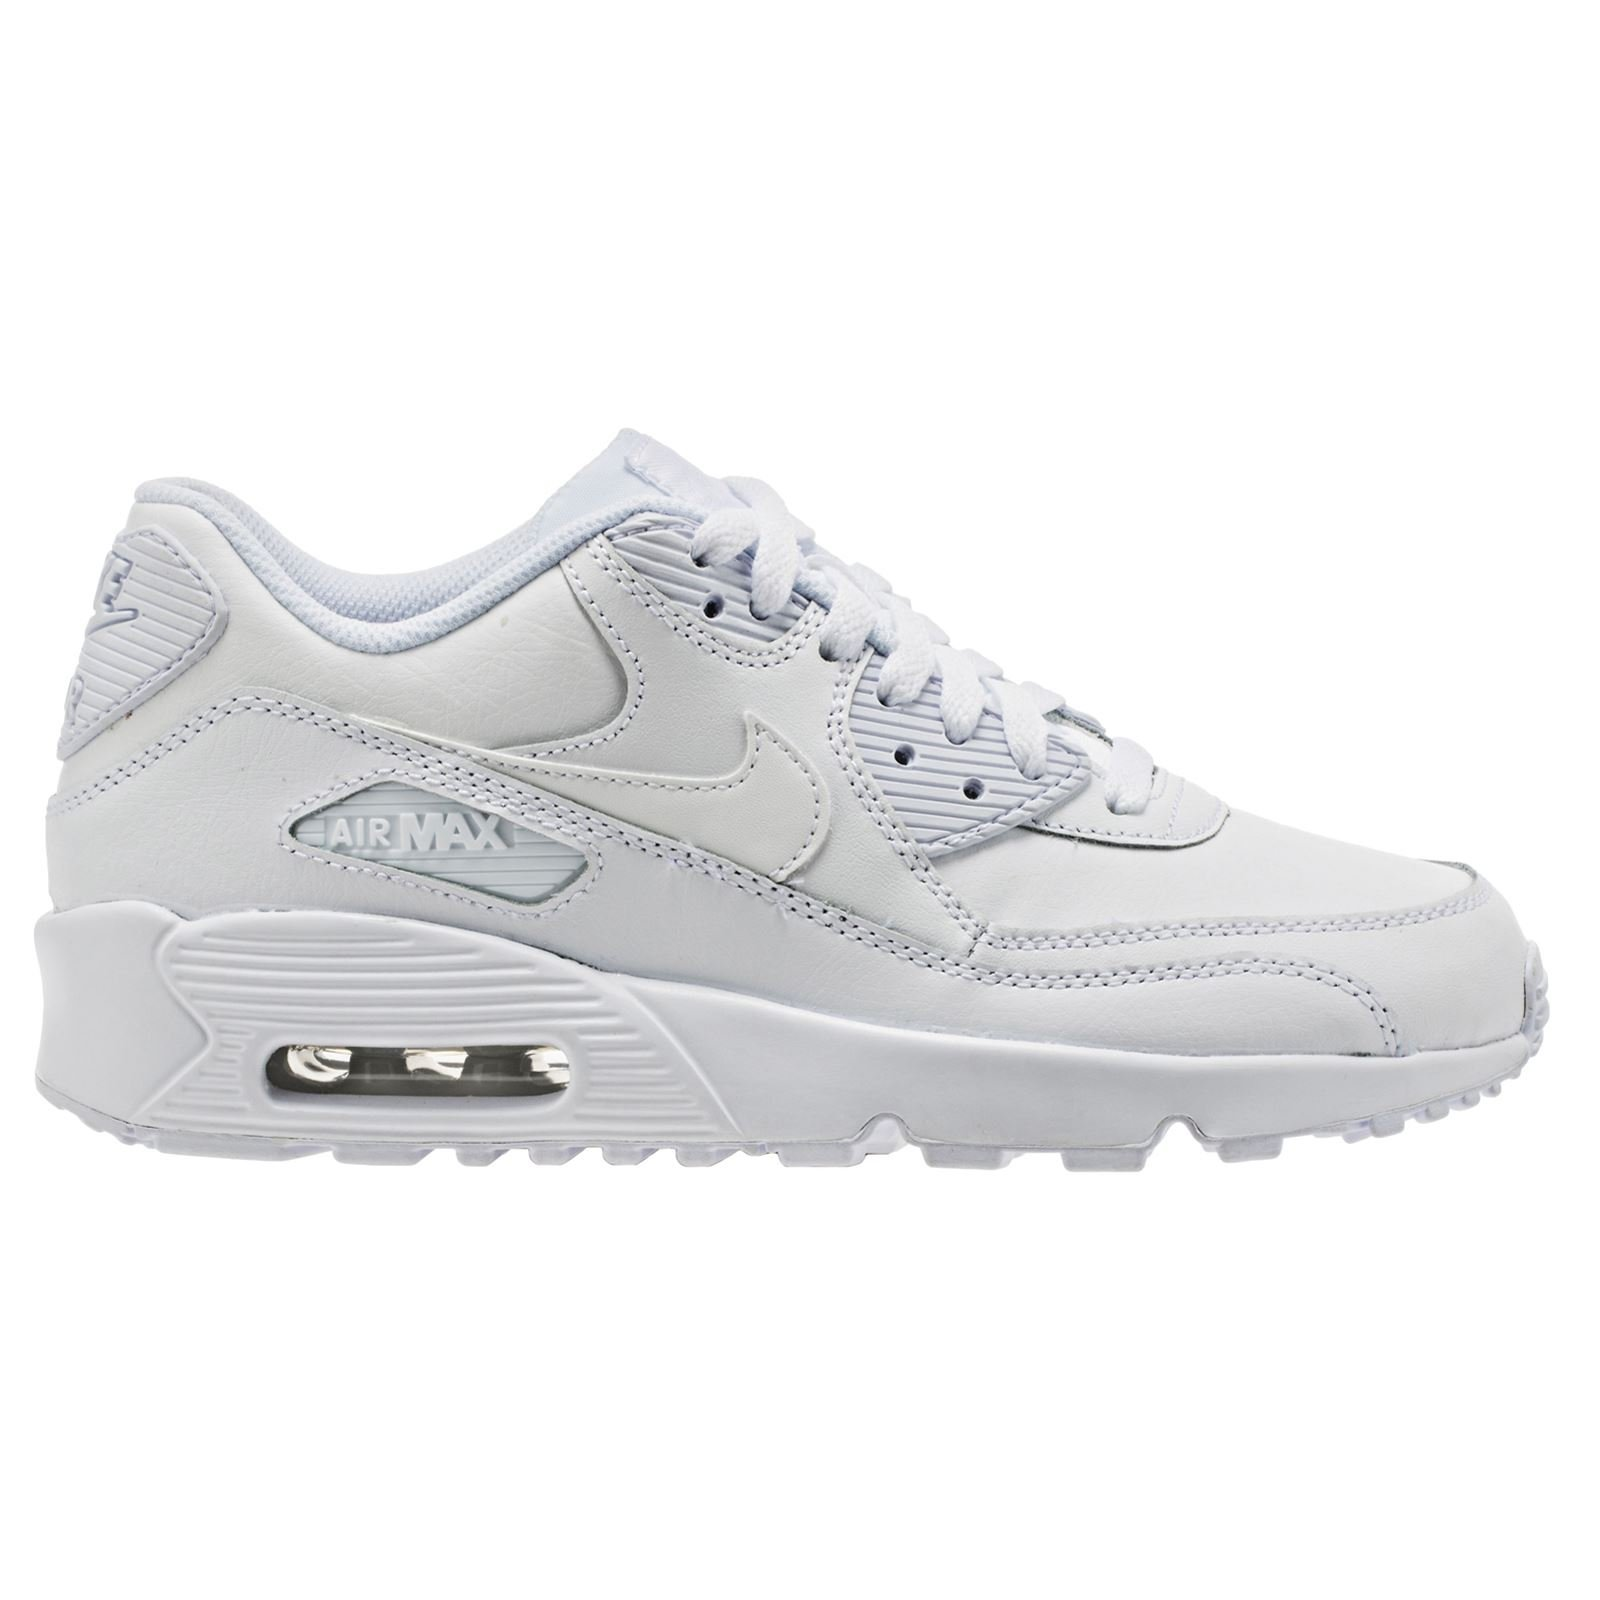 NIKE Air Max 90 LTR (GS) Boys Running-Shoes 833412 (3.5 M US Big Kid, White/White)